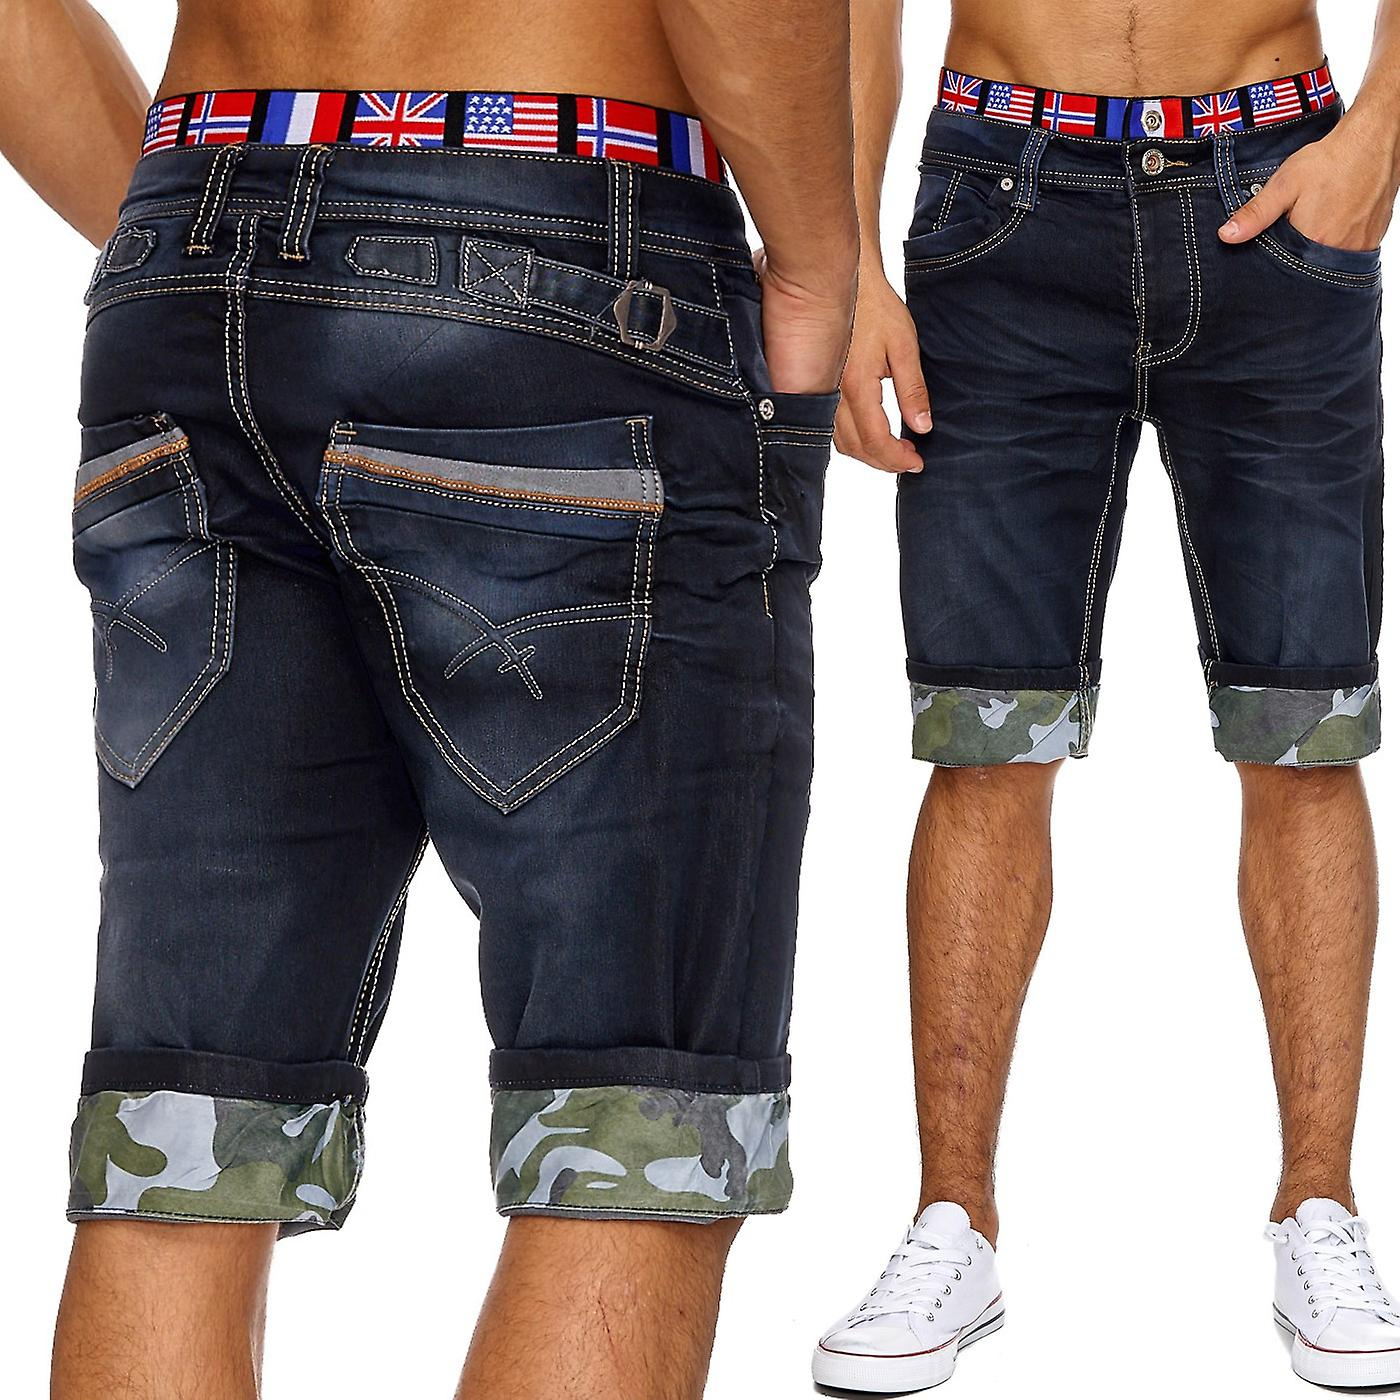 Men's Jeans Shorts Short Pants Stonewashed Classic Summer Flag USA Cargo Cap